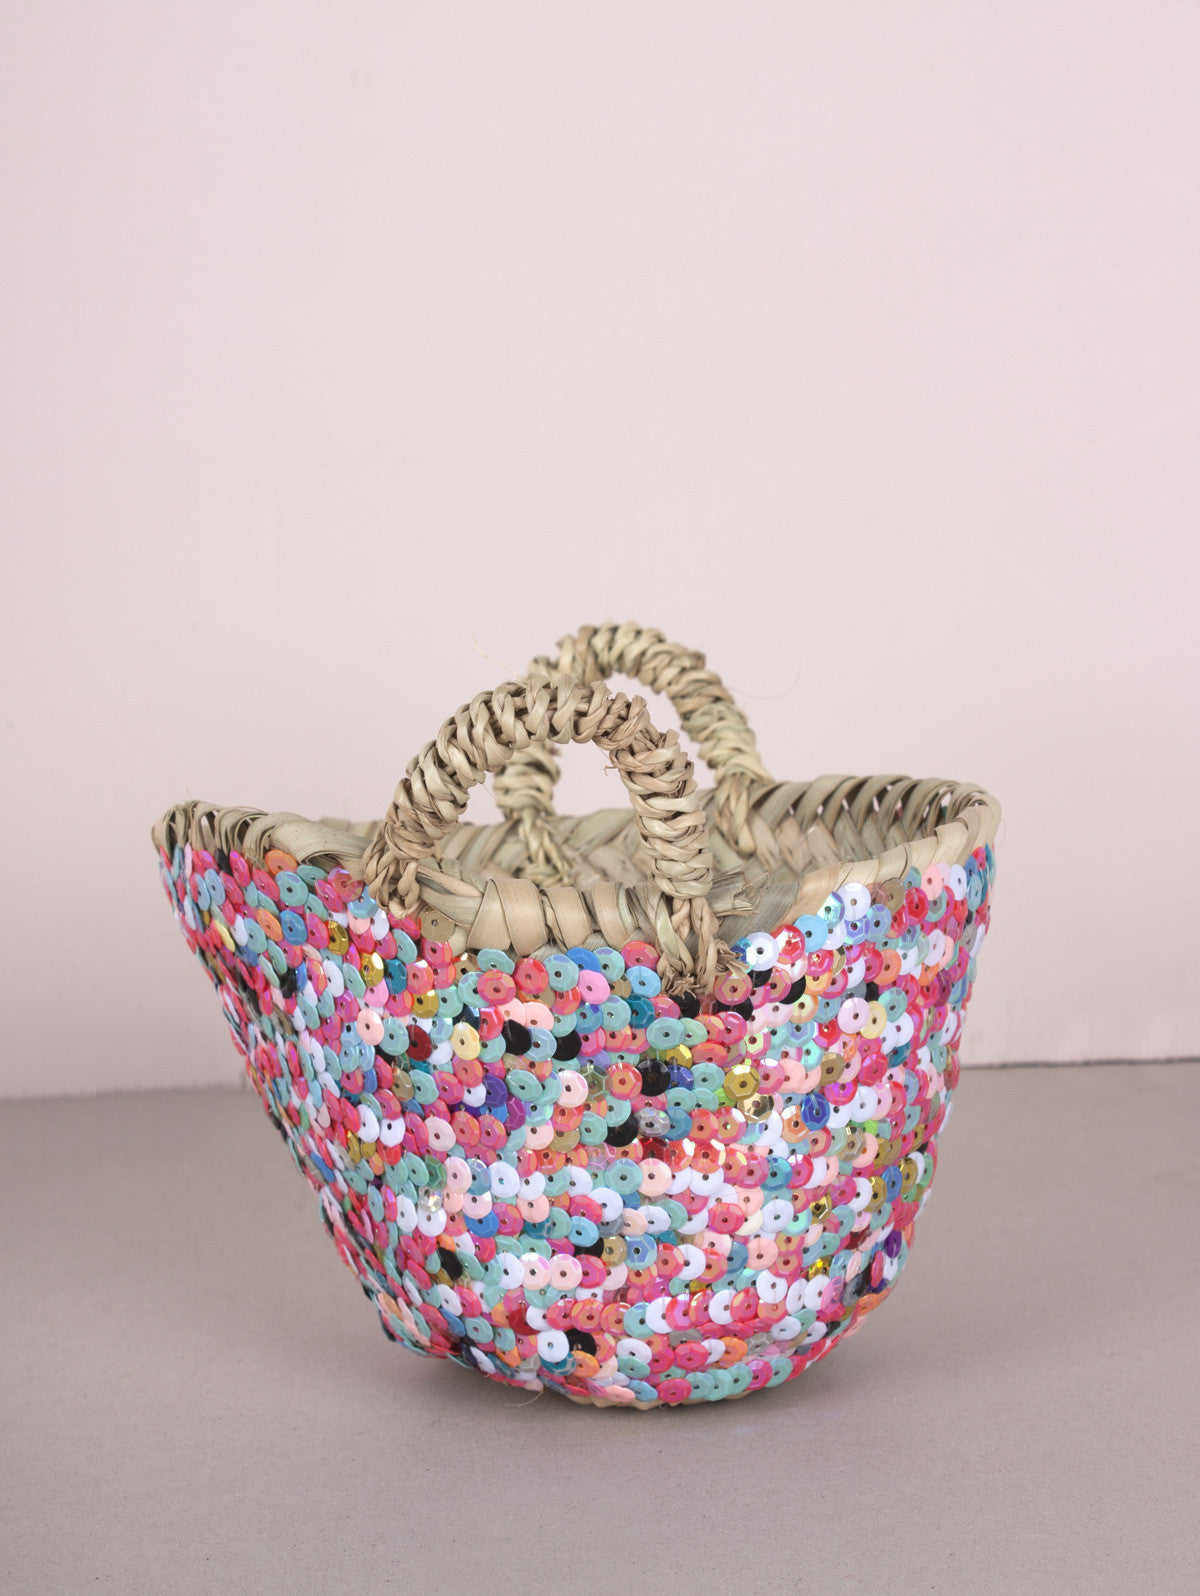 Tiny Sequin Baskets